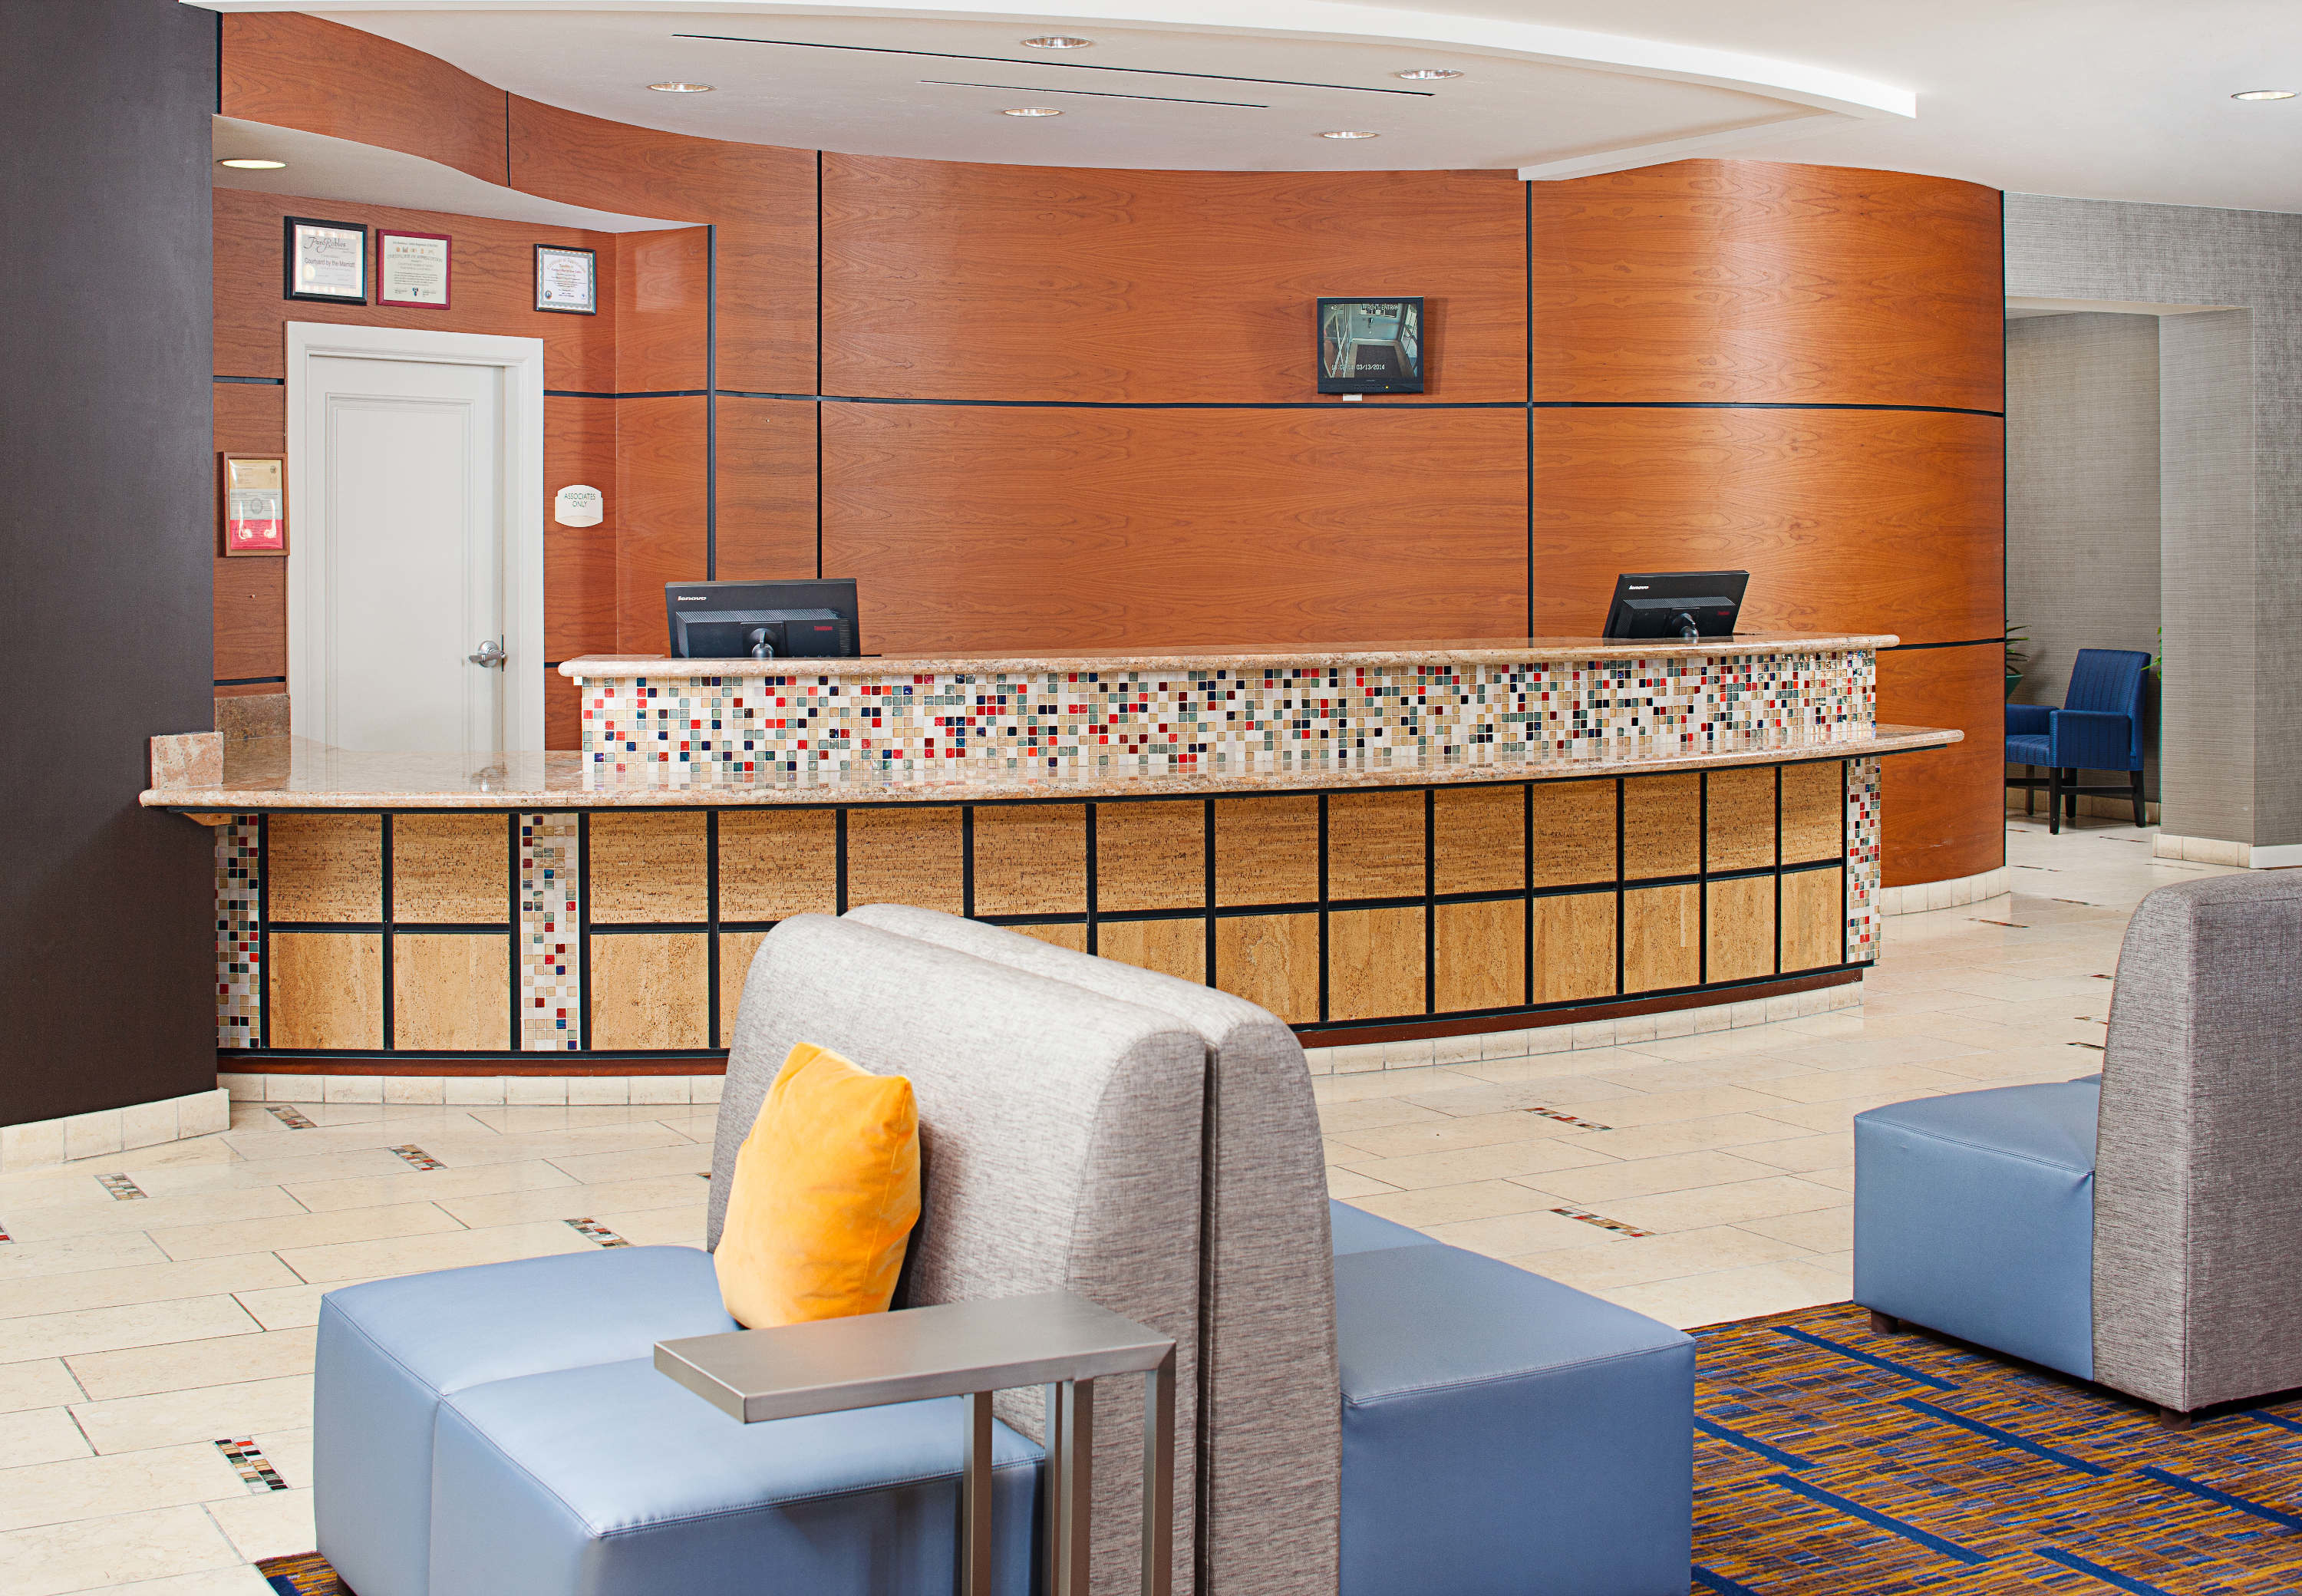 Courtyard by Marriott Paso Robles image 8